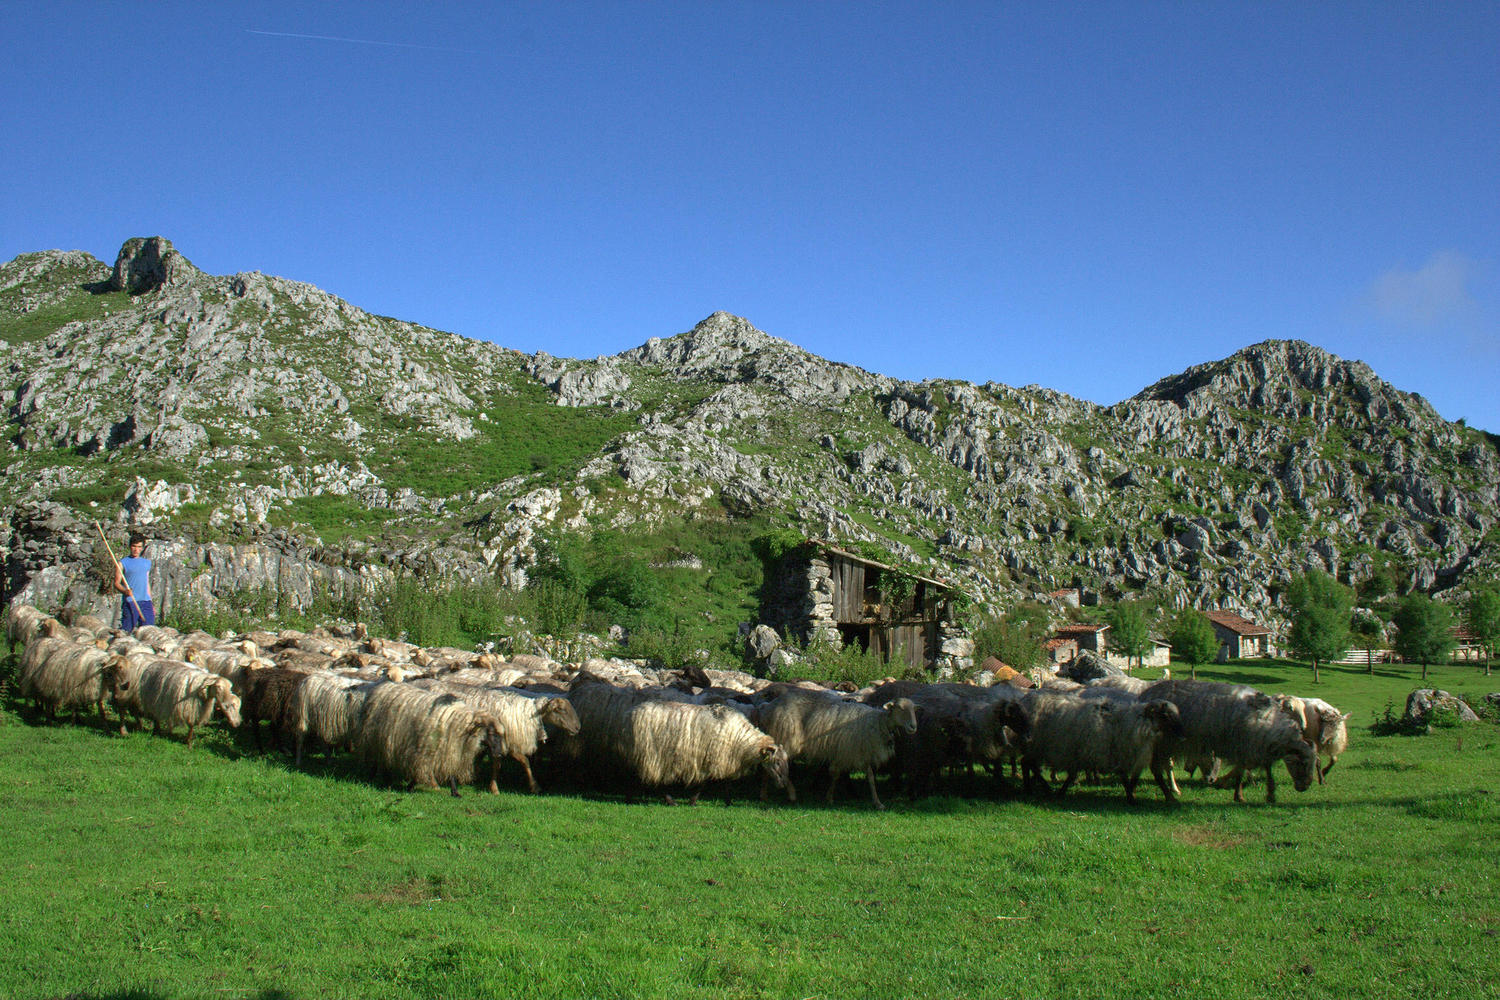 Herding the sheep in the high Picos de Europa